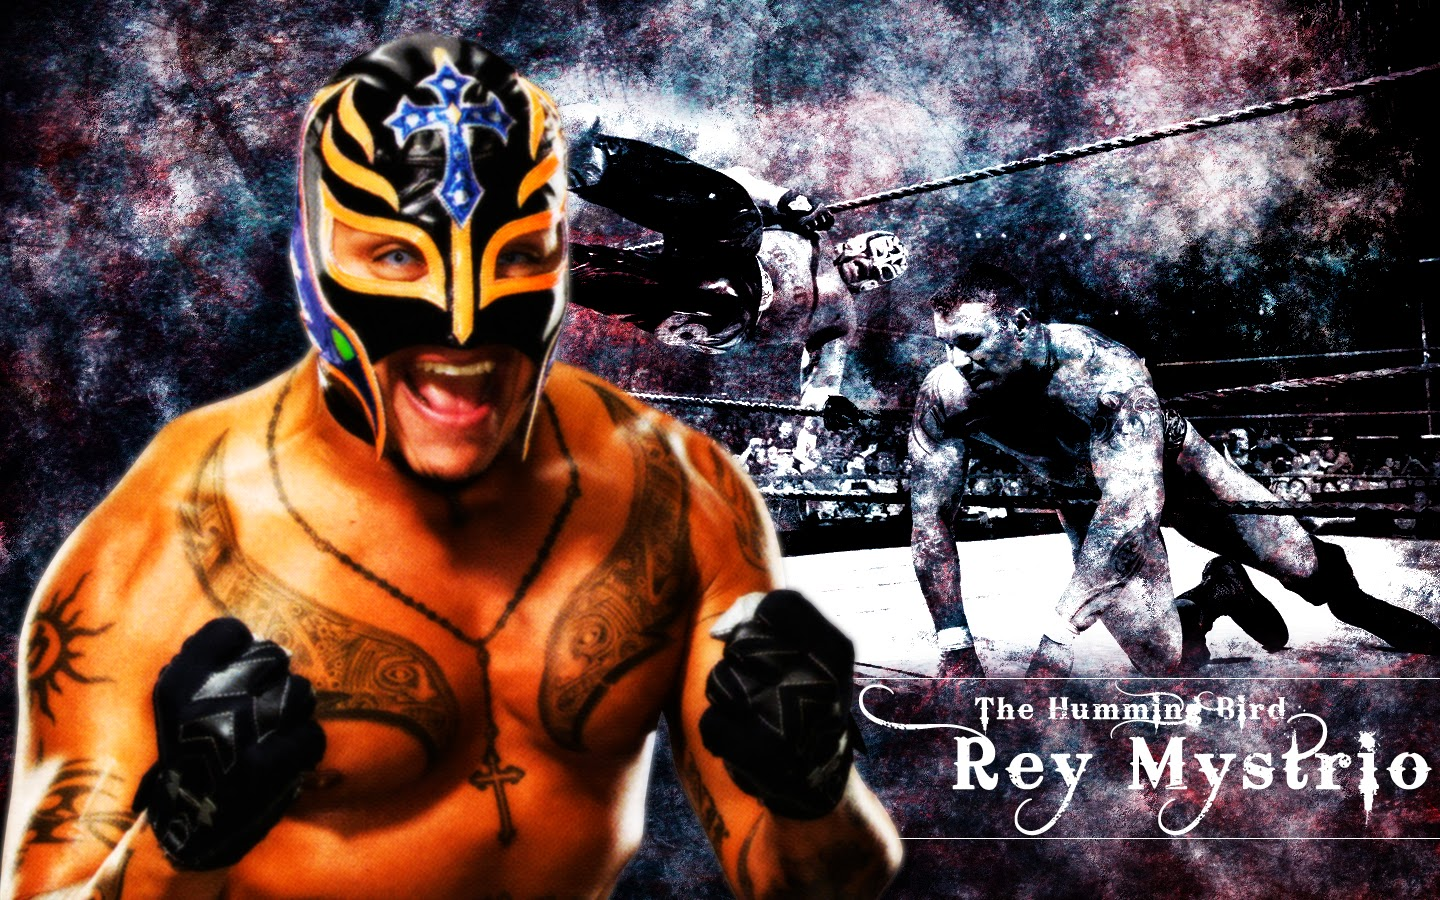 Rey Mysterio 619 New HD Wallpapers - Wrestling Wallpapers